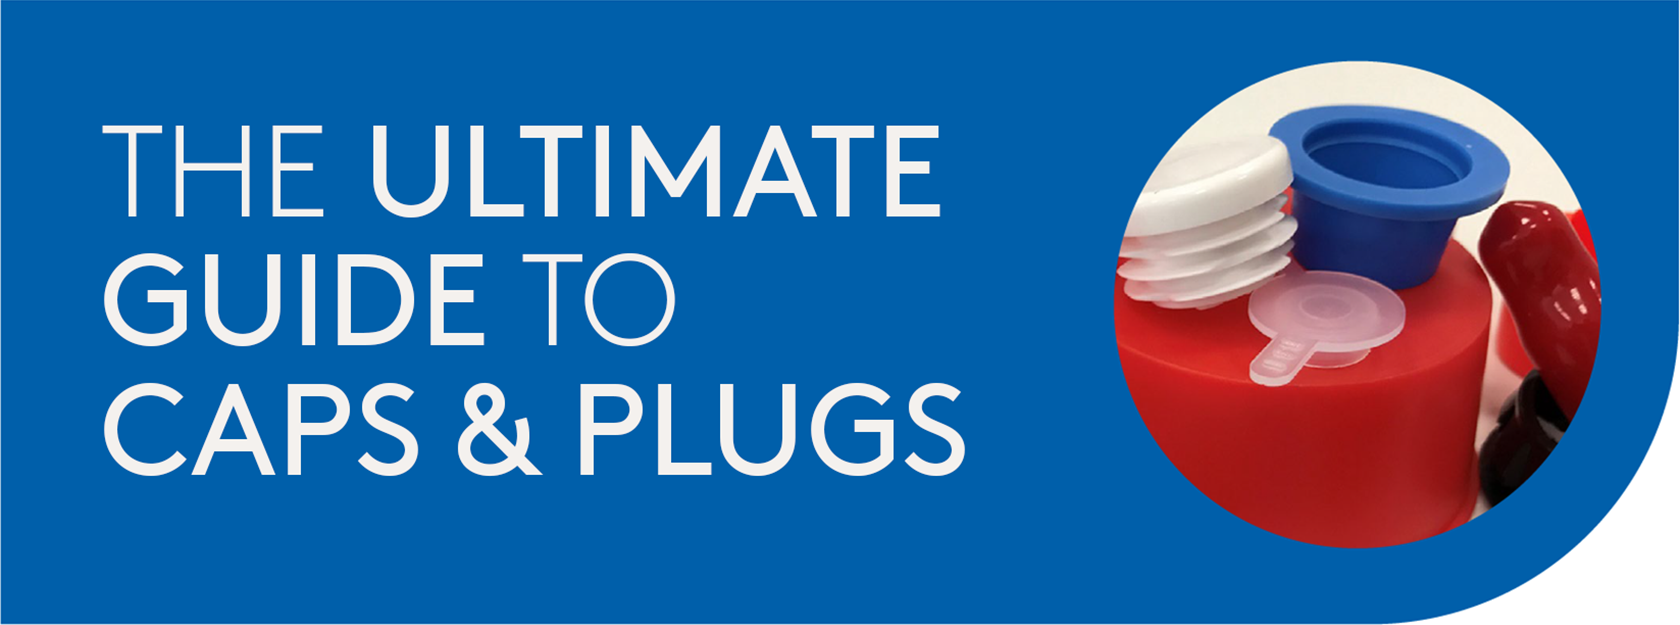 The Ultimate Guide to Caps and Plugs